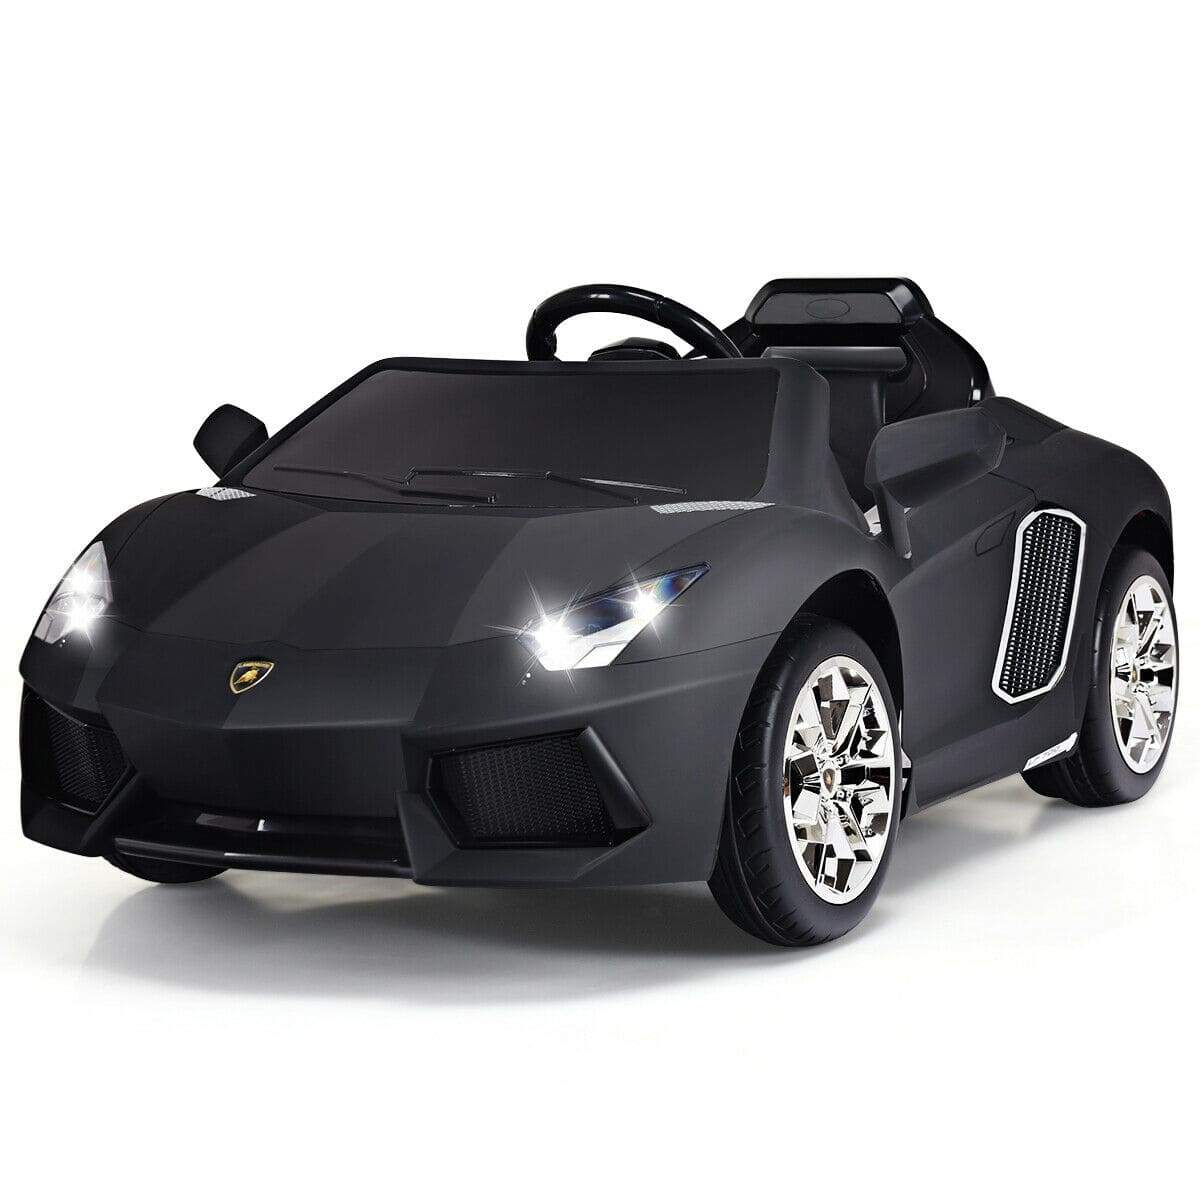 Lamborghini AVENTADOR Licensed 12V Electric Kids Ride On Car | Black - FREE SHIPPING Cars & SUVs Costway